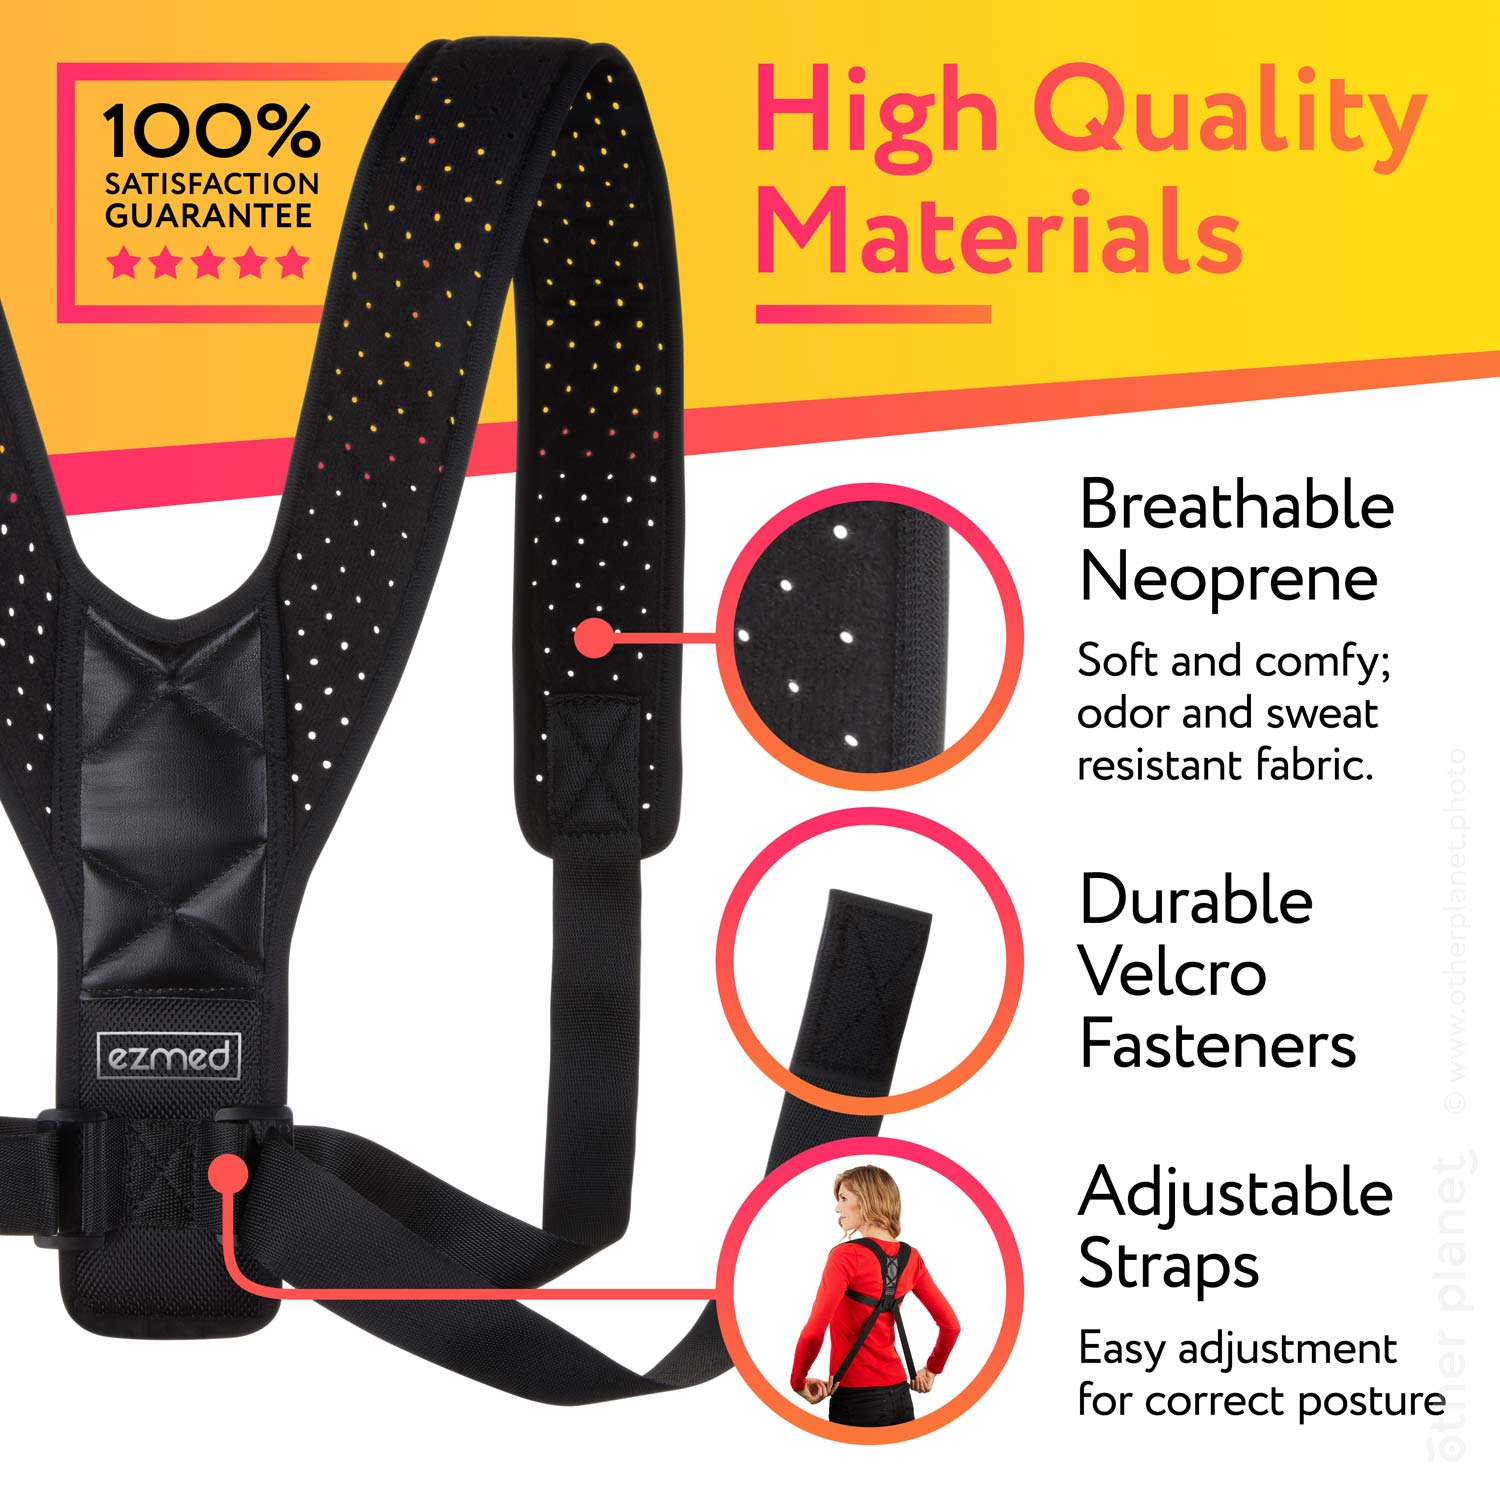 Posture corrector image with closeups and materials presentation